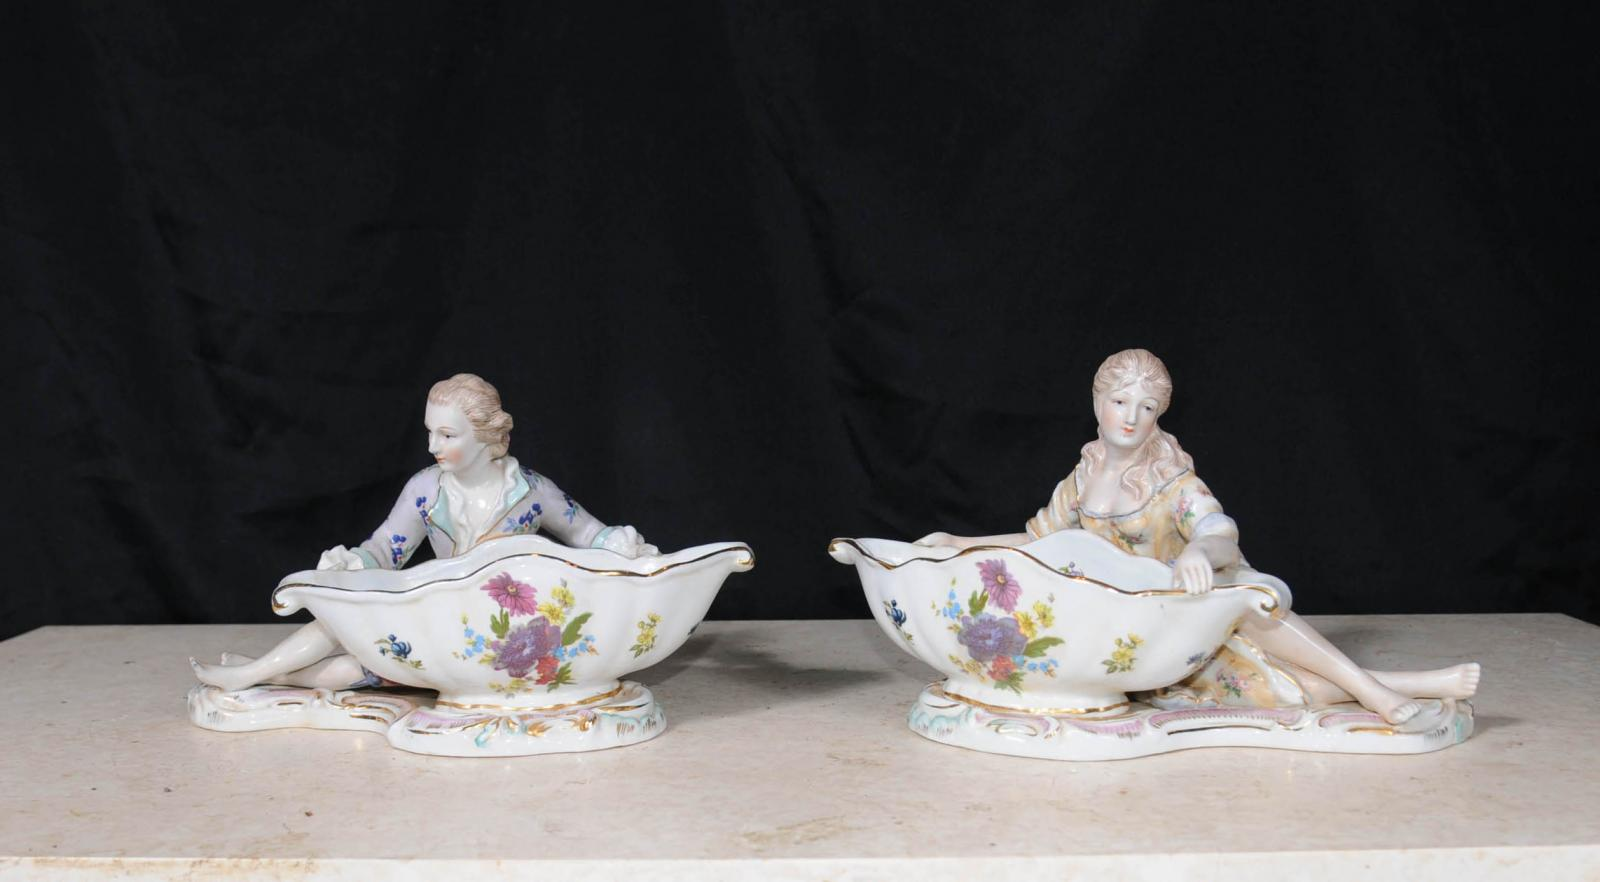 Pair Dresden Porcelain Figurine Dishes Bowls German  : Pair20Dresden20Porcelain20Figurine20Dishes20Bowls20German20Pottery 1364357661 zoom 23 from www.ebay.co.uk size 1600 x 882 jpeg 85kB